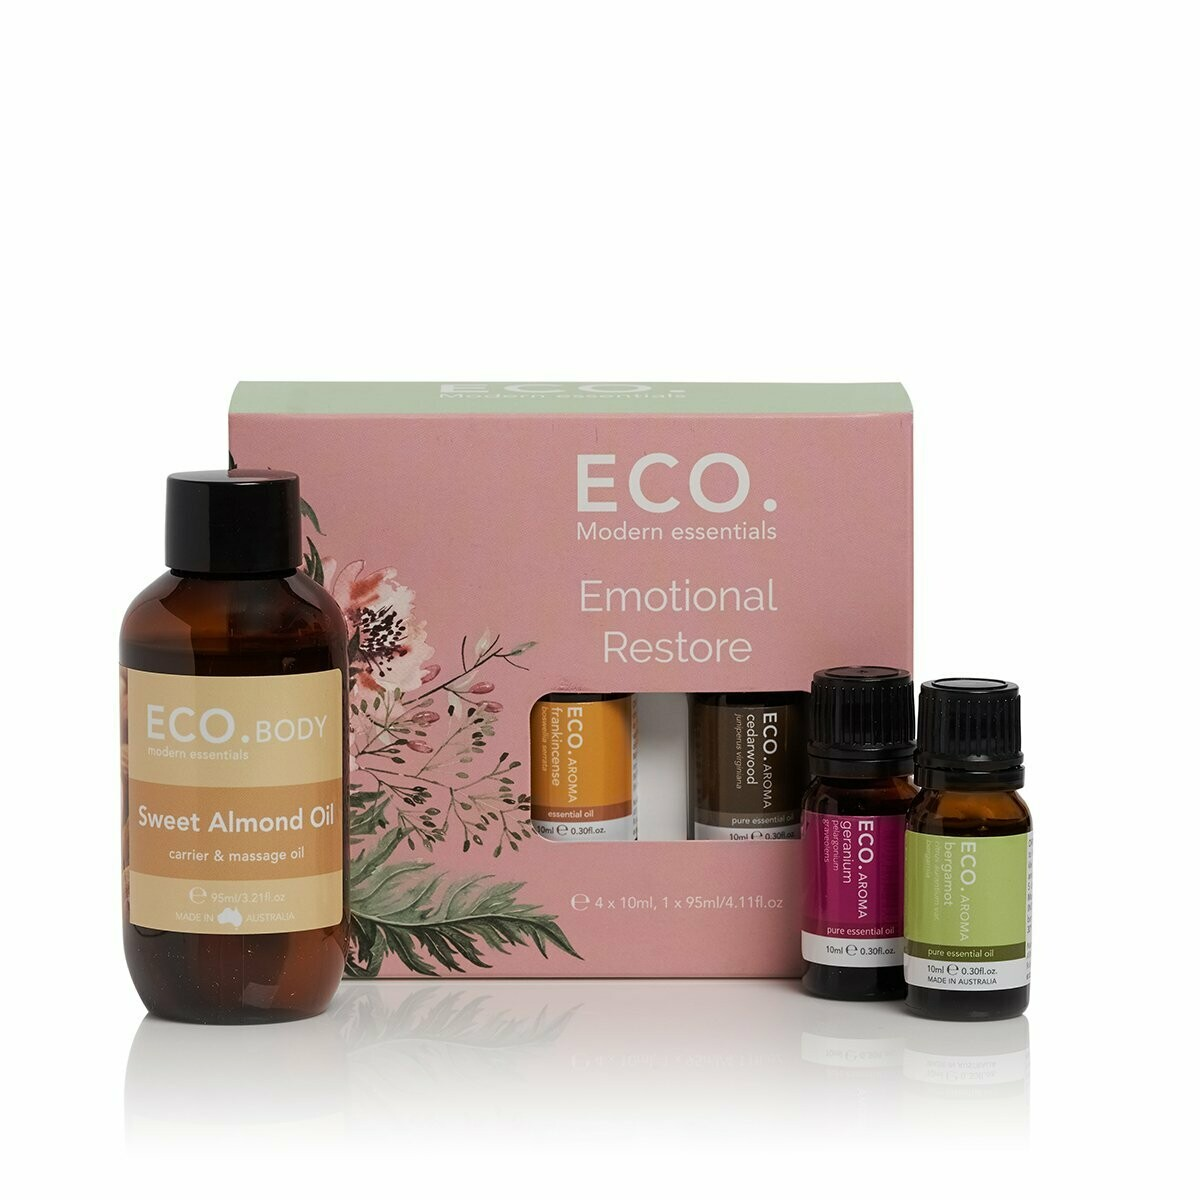 ECO. Emotional Restore Pack (4x 10ml Essential Oils, 1x 95ml Carrier Oil)